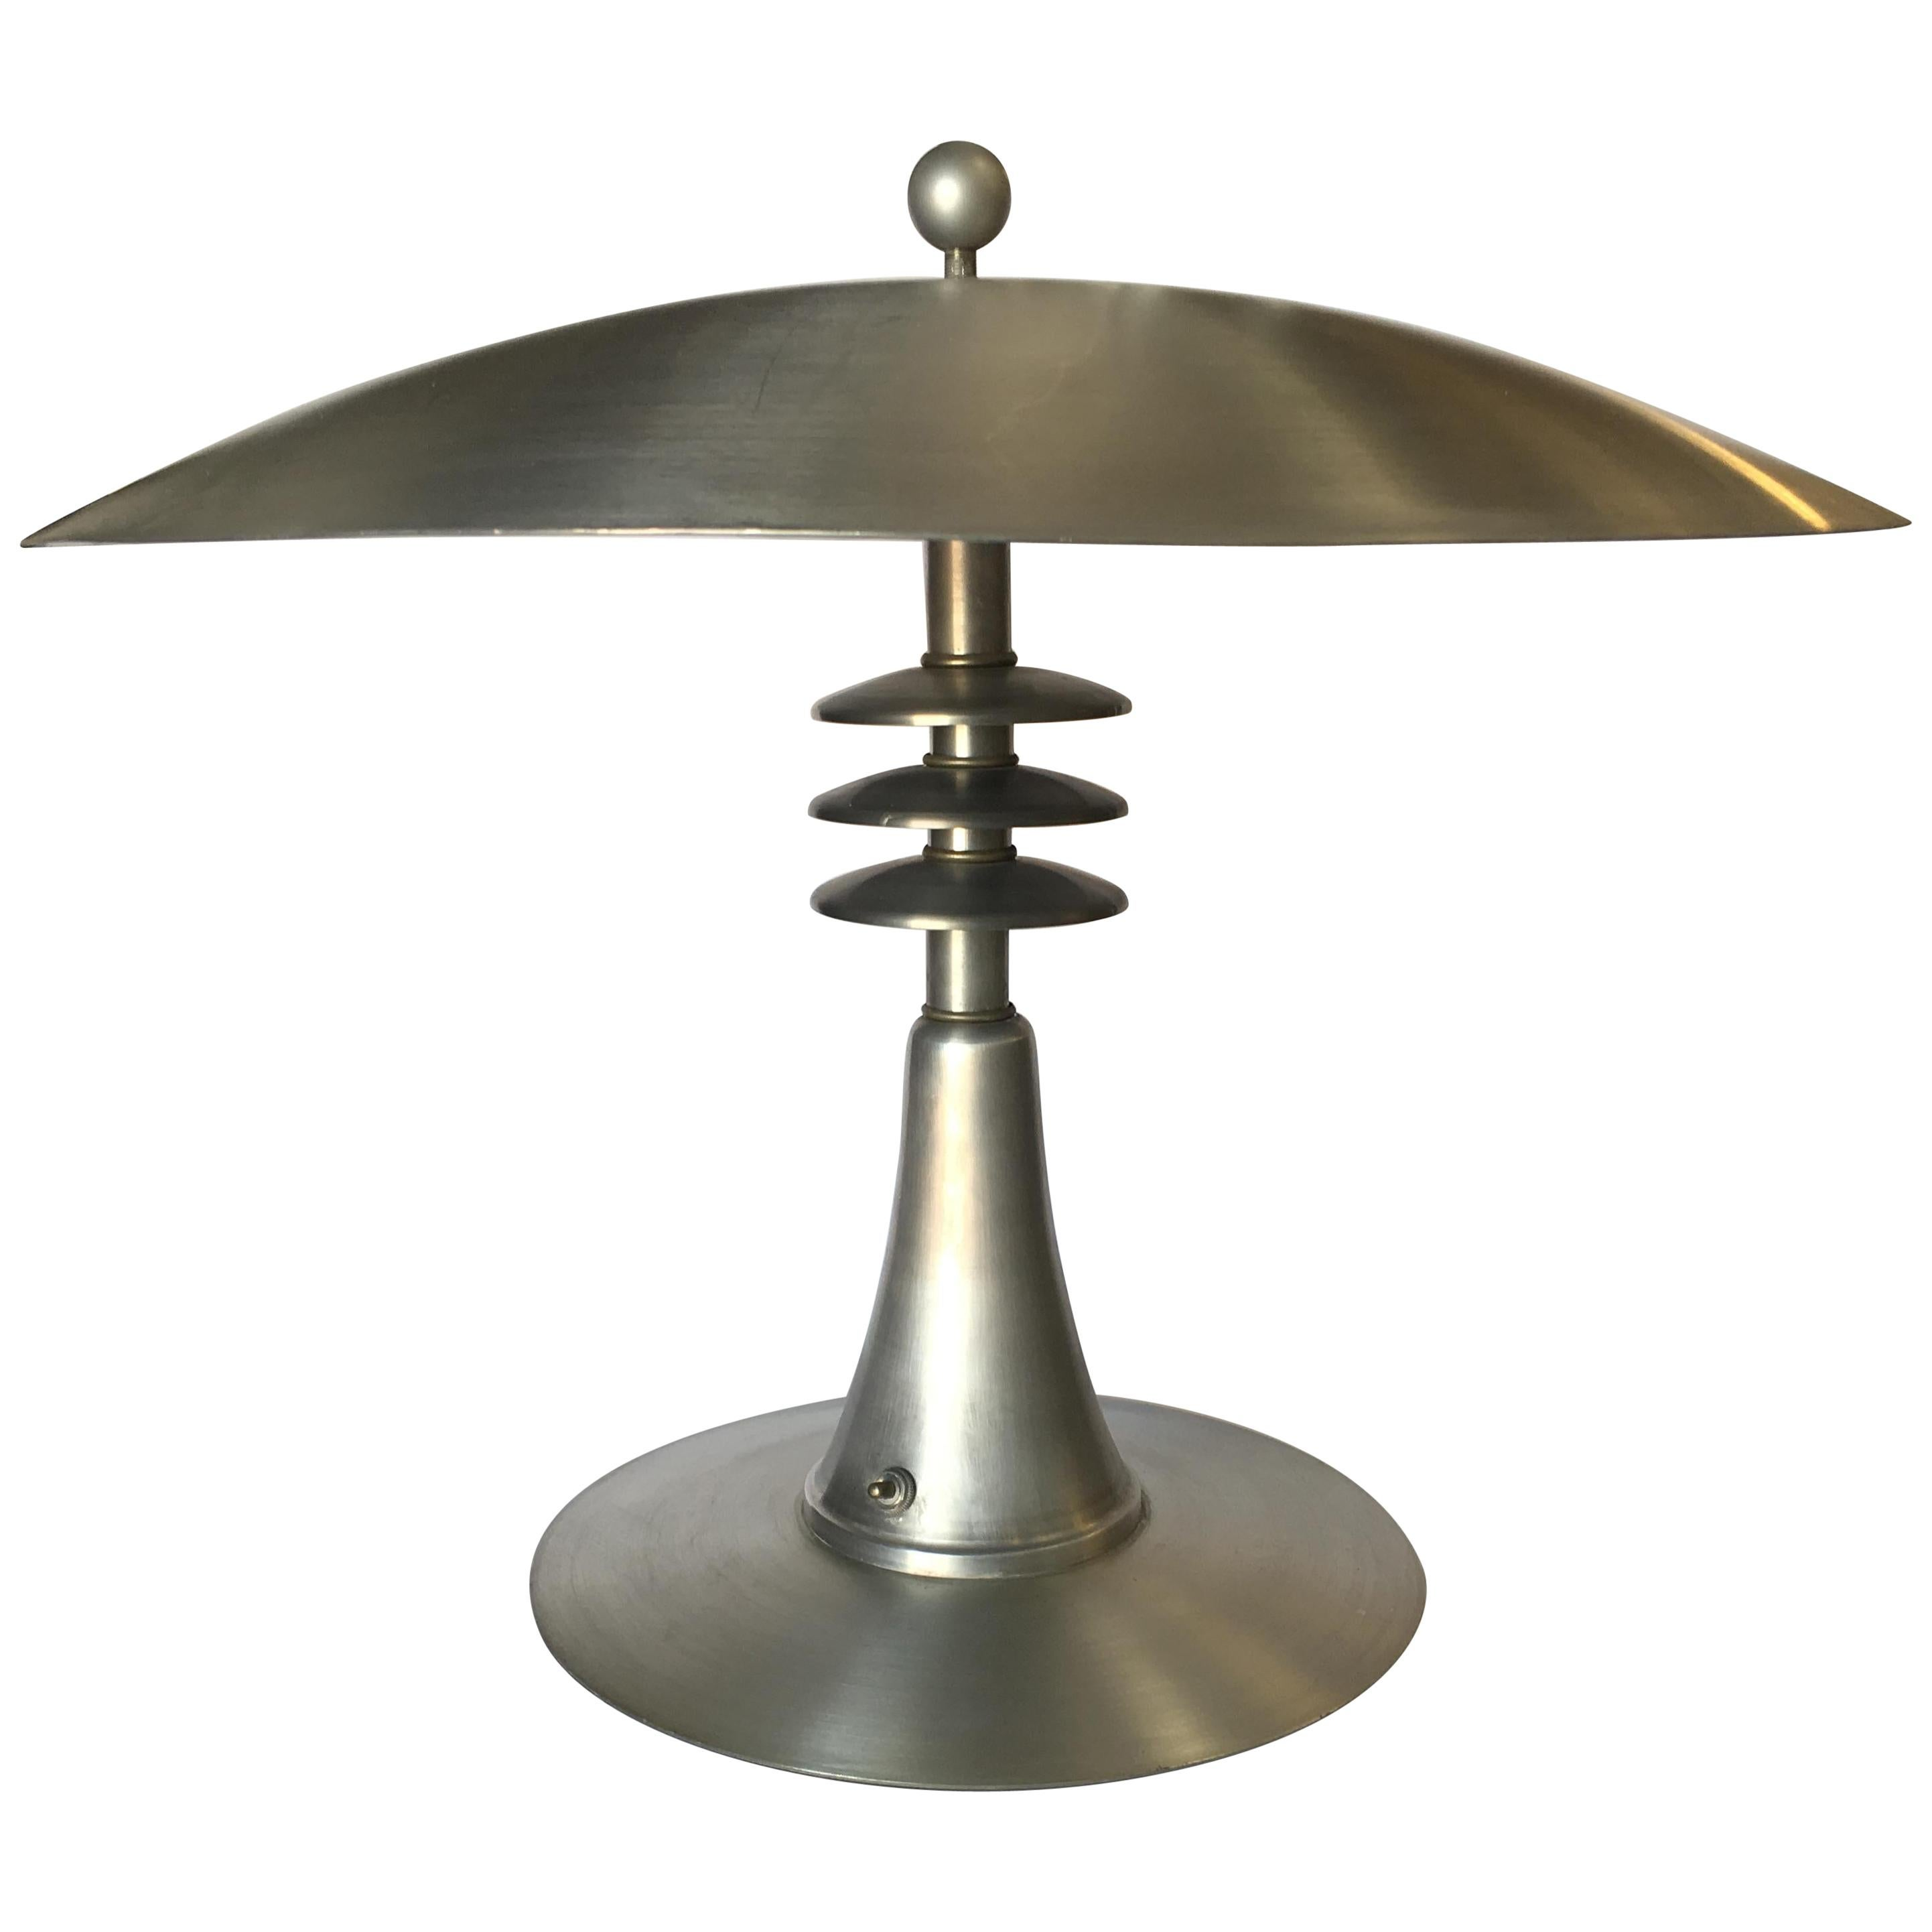 Art Deco Style Machine Age Table Lamp with Large Spun Aluminum Shade